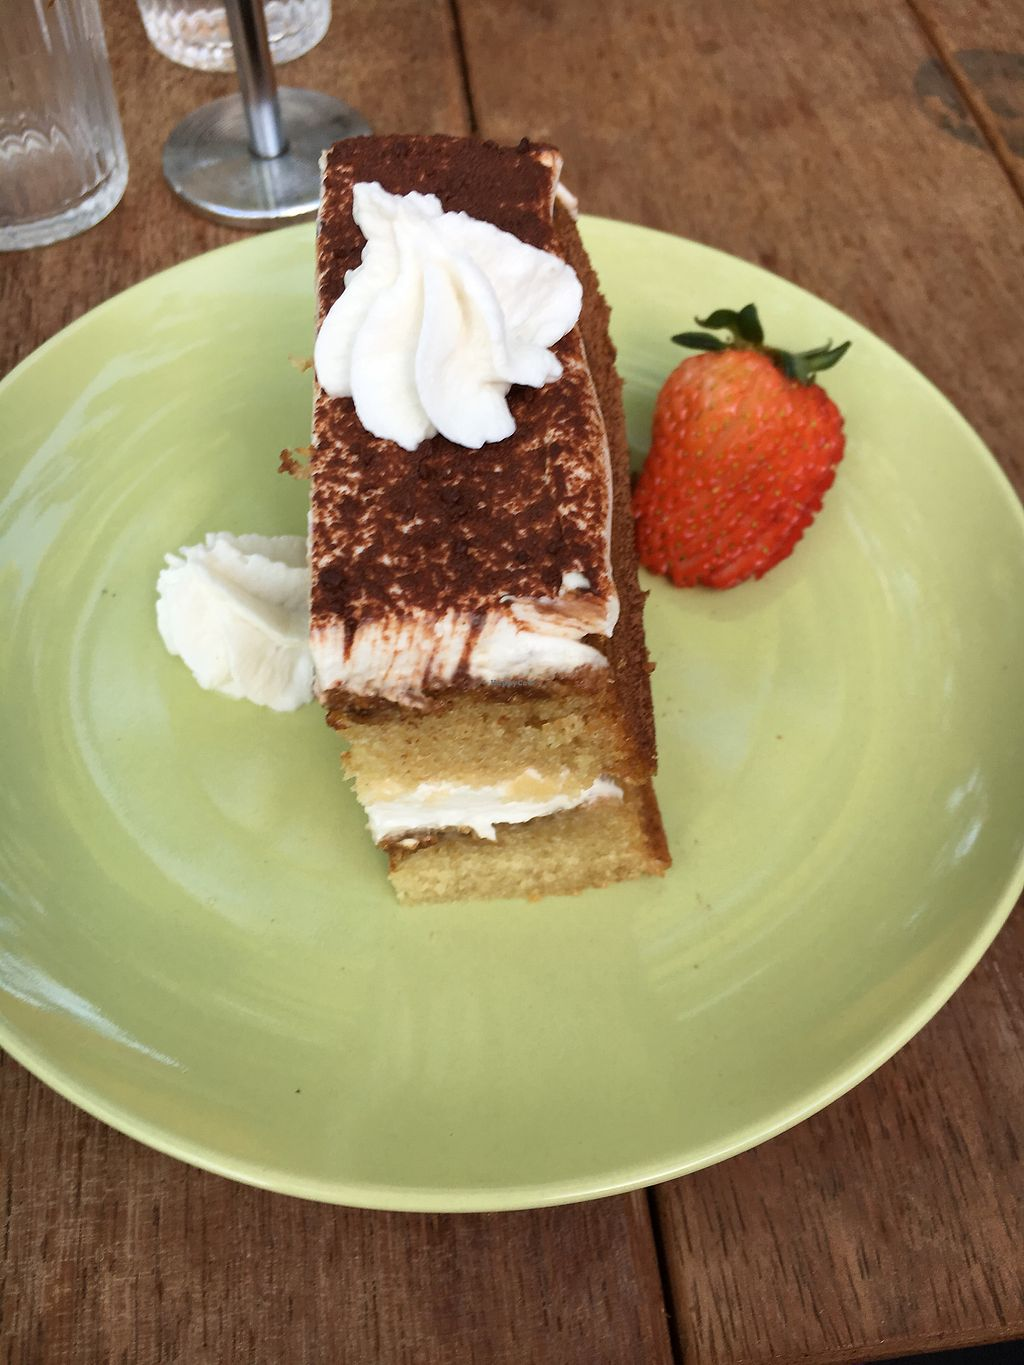 "Photo of Sweet Bones Bakery Cafe  by <a href=""/members/profile/2lentilforyou"">2lentilforyou</a> <br/>Special event tiramisu <br/> September 9, 2017  - <a href='/contact/abuse/image/35928/302721'>Report</a>"